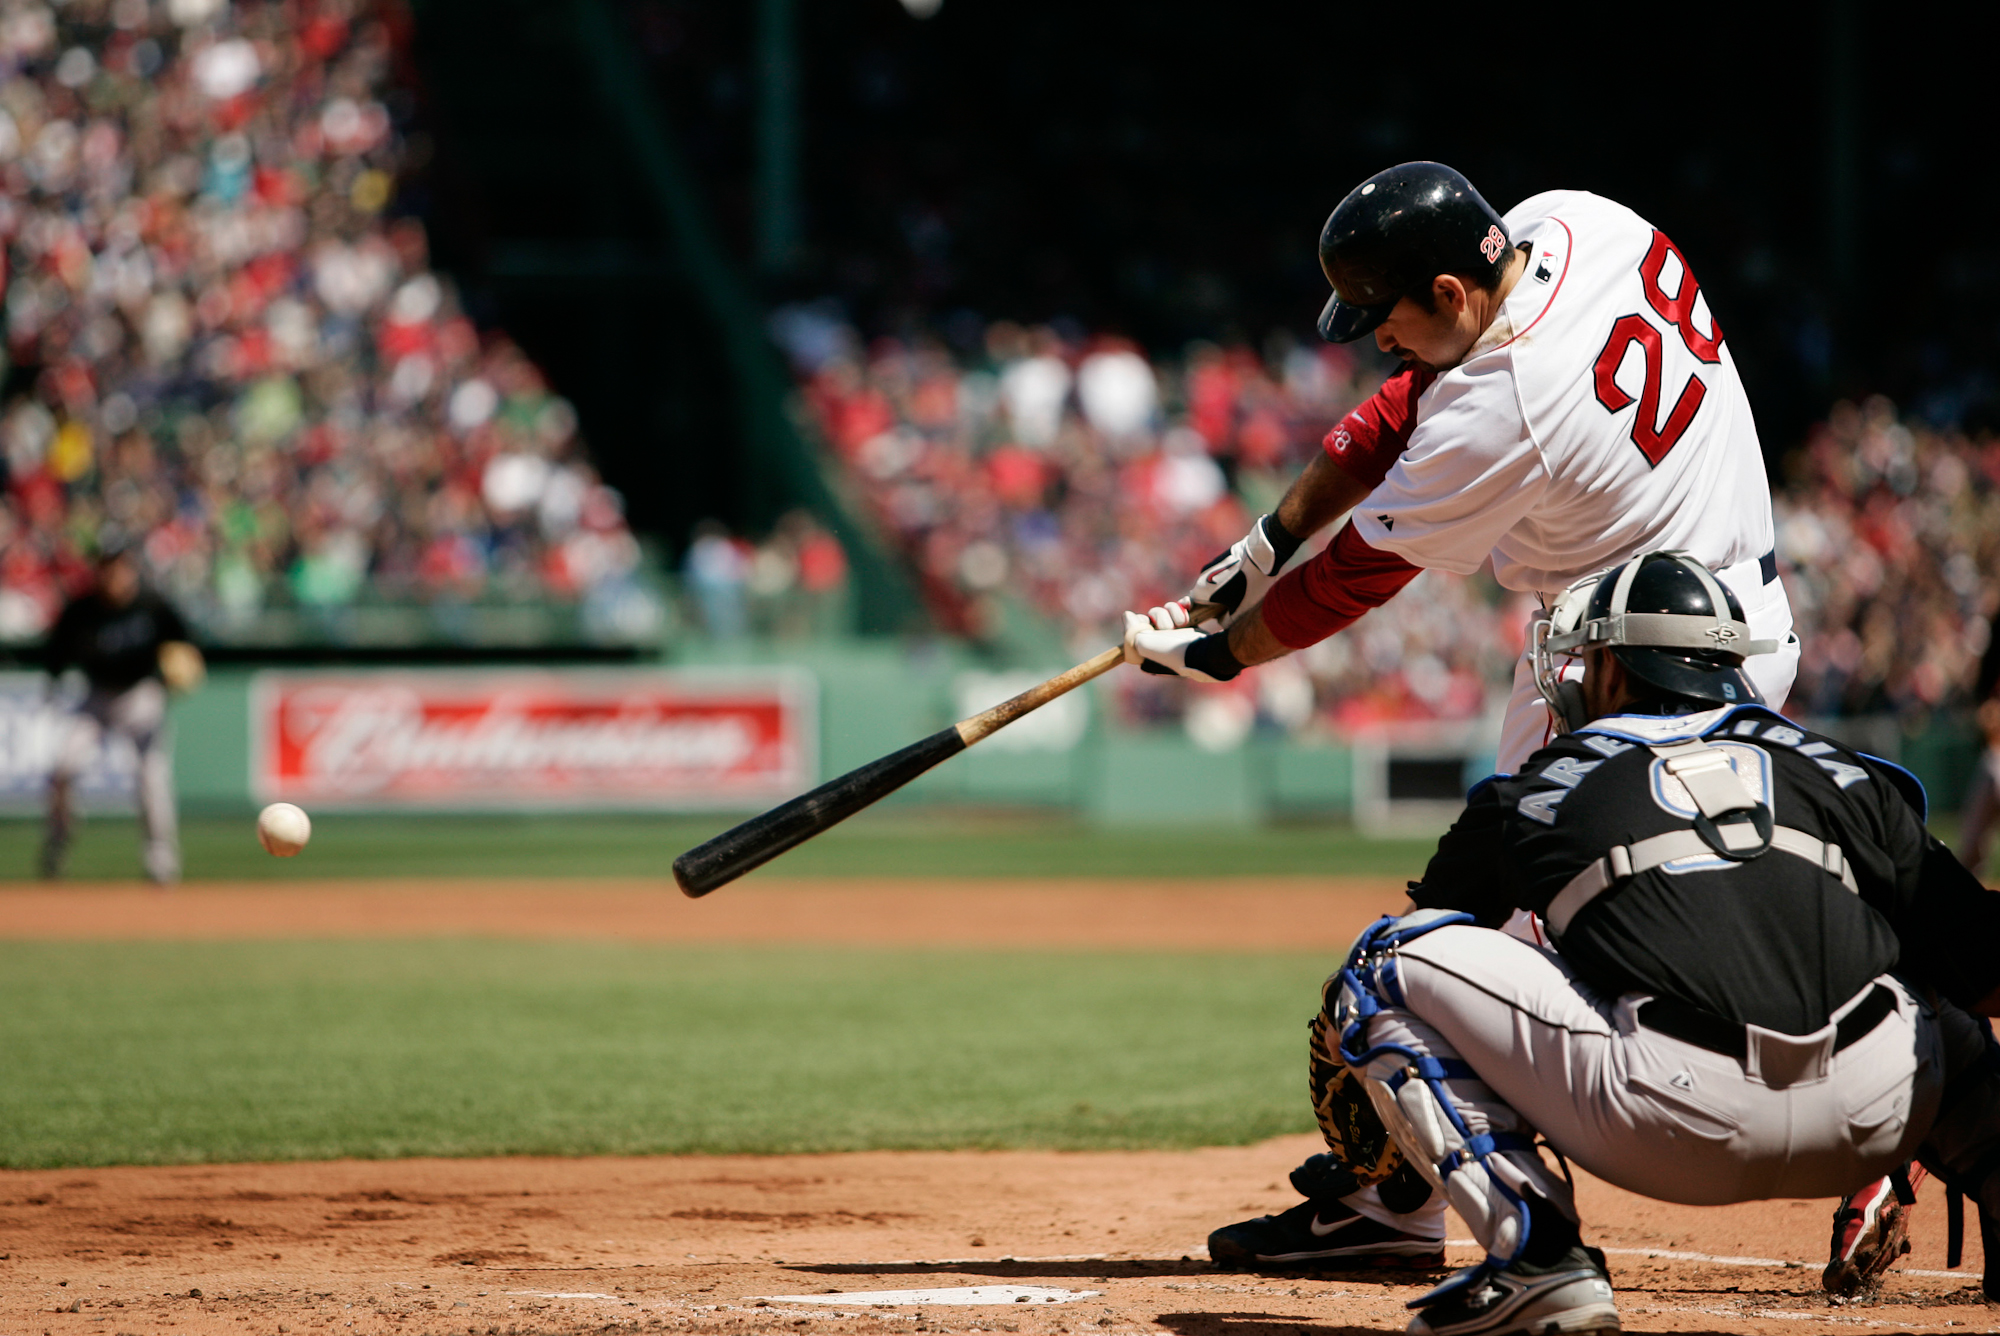 Boston Red Sox Adrian Gonzalez connects for a single in the first inning against the Toronto Blue Jays at Fenway Park in Boston on April 17, 2011.